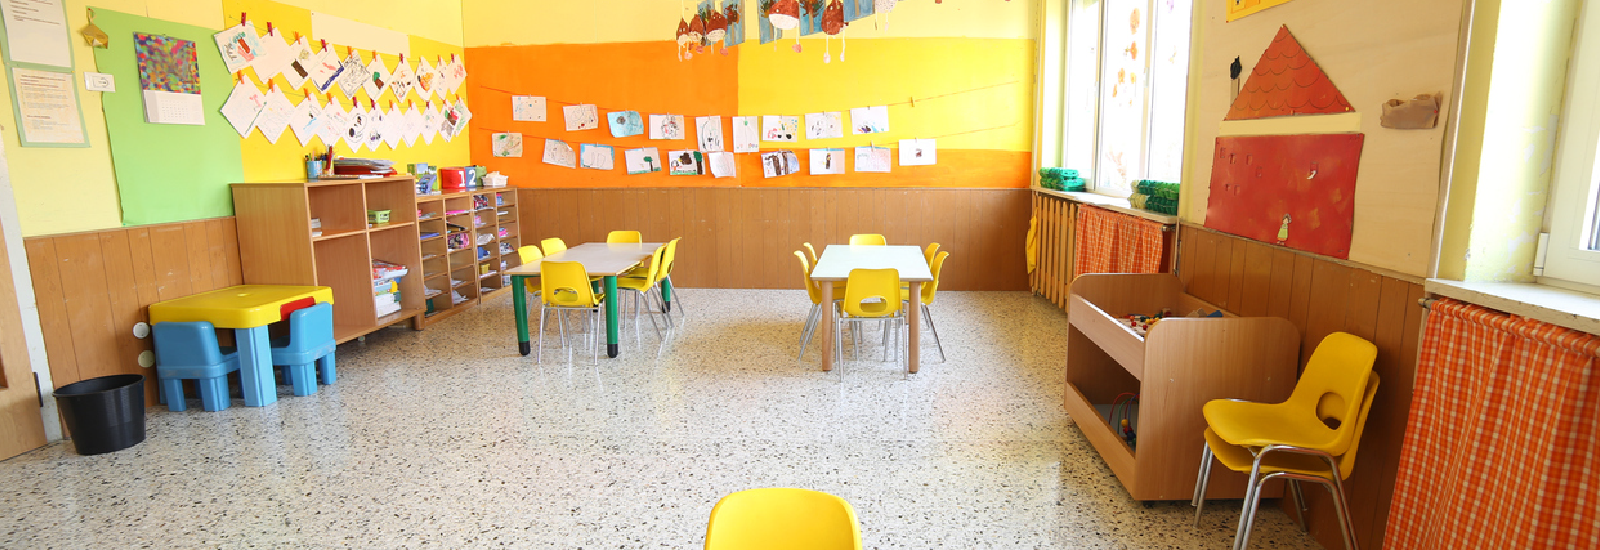 Daycares Near Fort Bliss